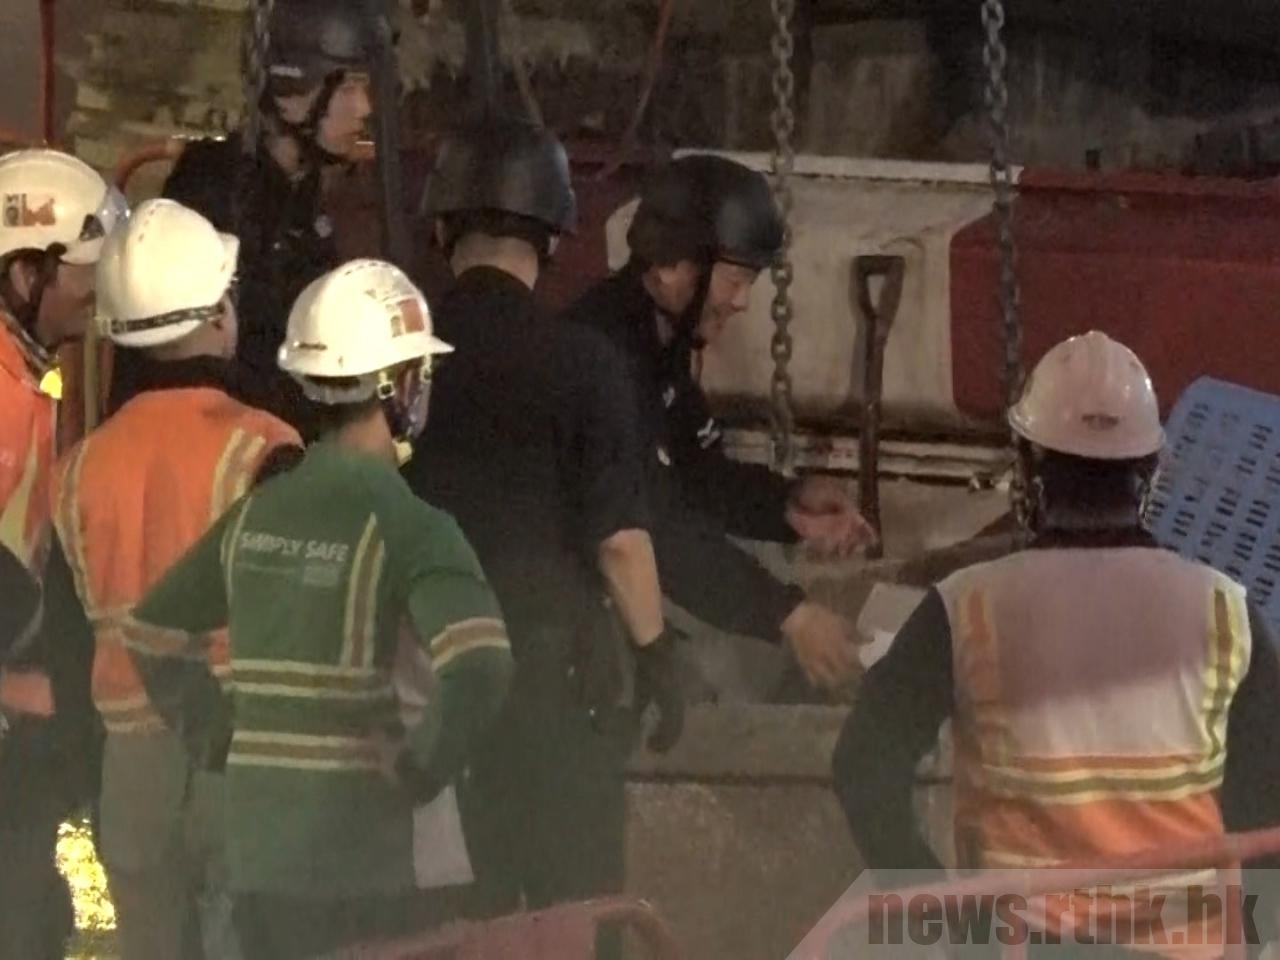 Another bomb unearthed in downtown Hong Kong